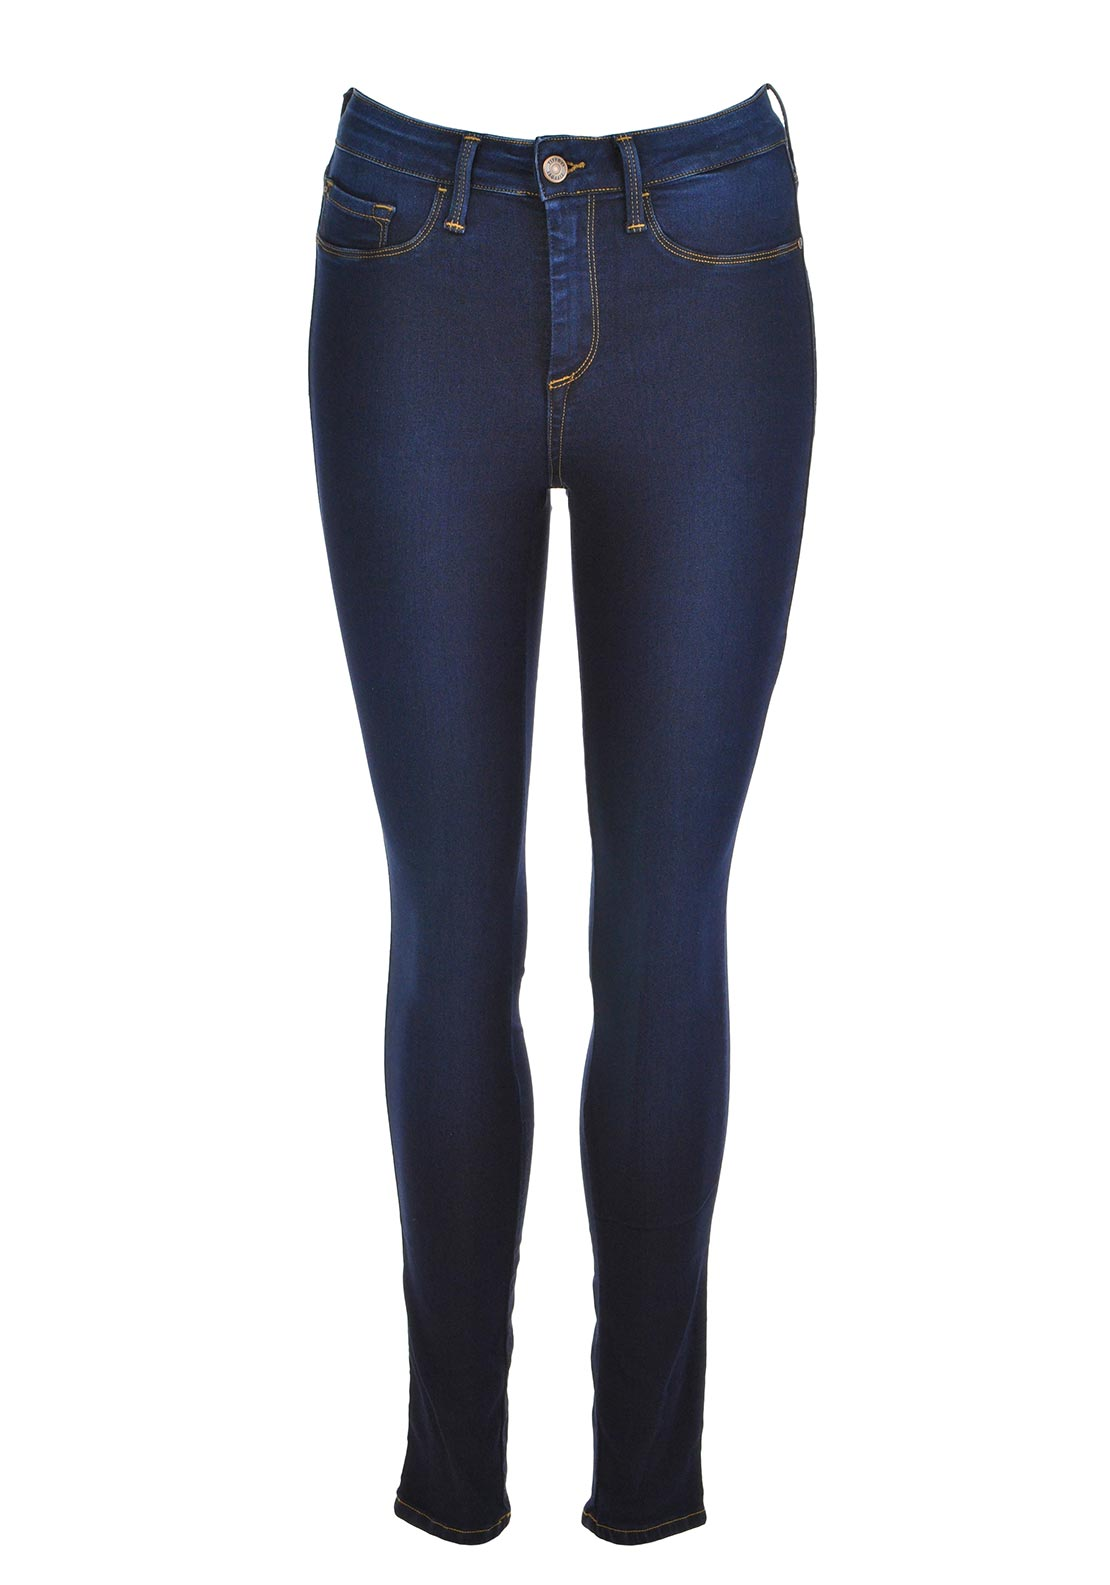 07a186611af ... Navy Tiffosi Womens One Size Fits All Skinny Jeans